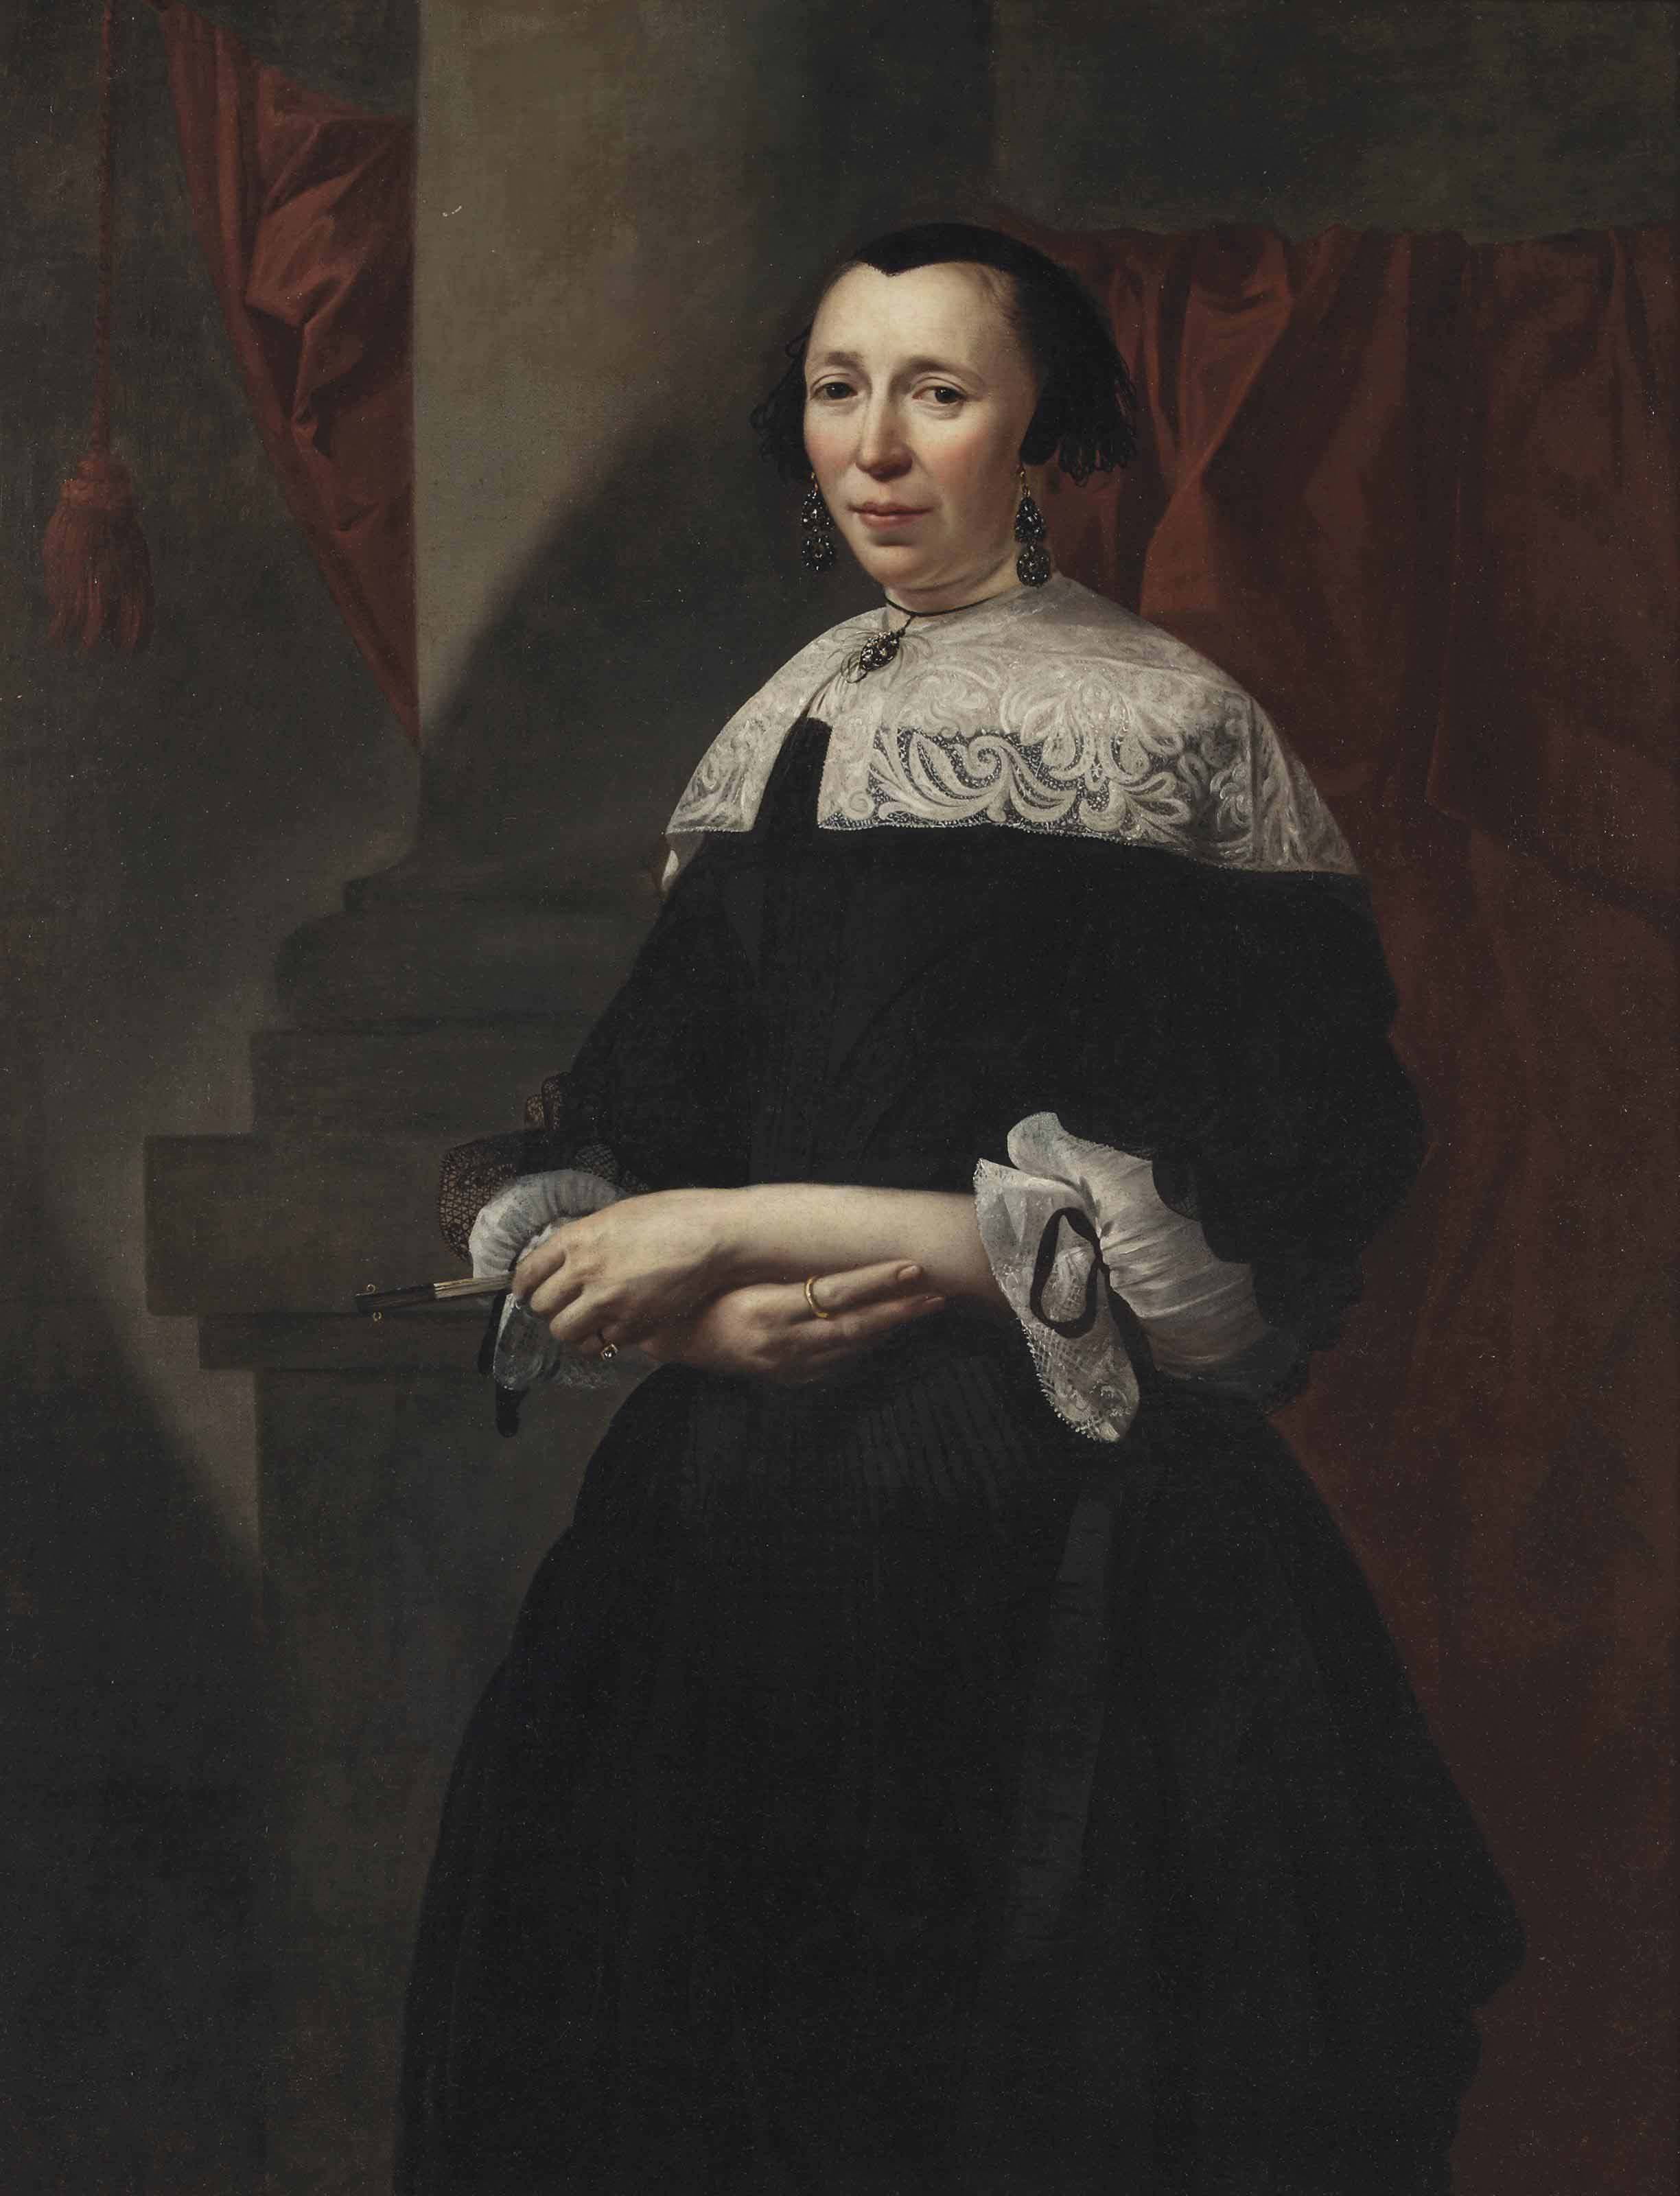 Portrait of a lady, three-quarter-length, in a black dress with white lace sleeves, a white lace collar and a black lace cap and wearing onyx earrings and necklace, holding a closed fan, standing before a column and a red curtain